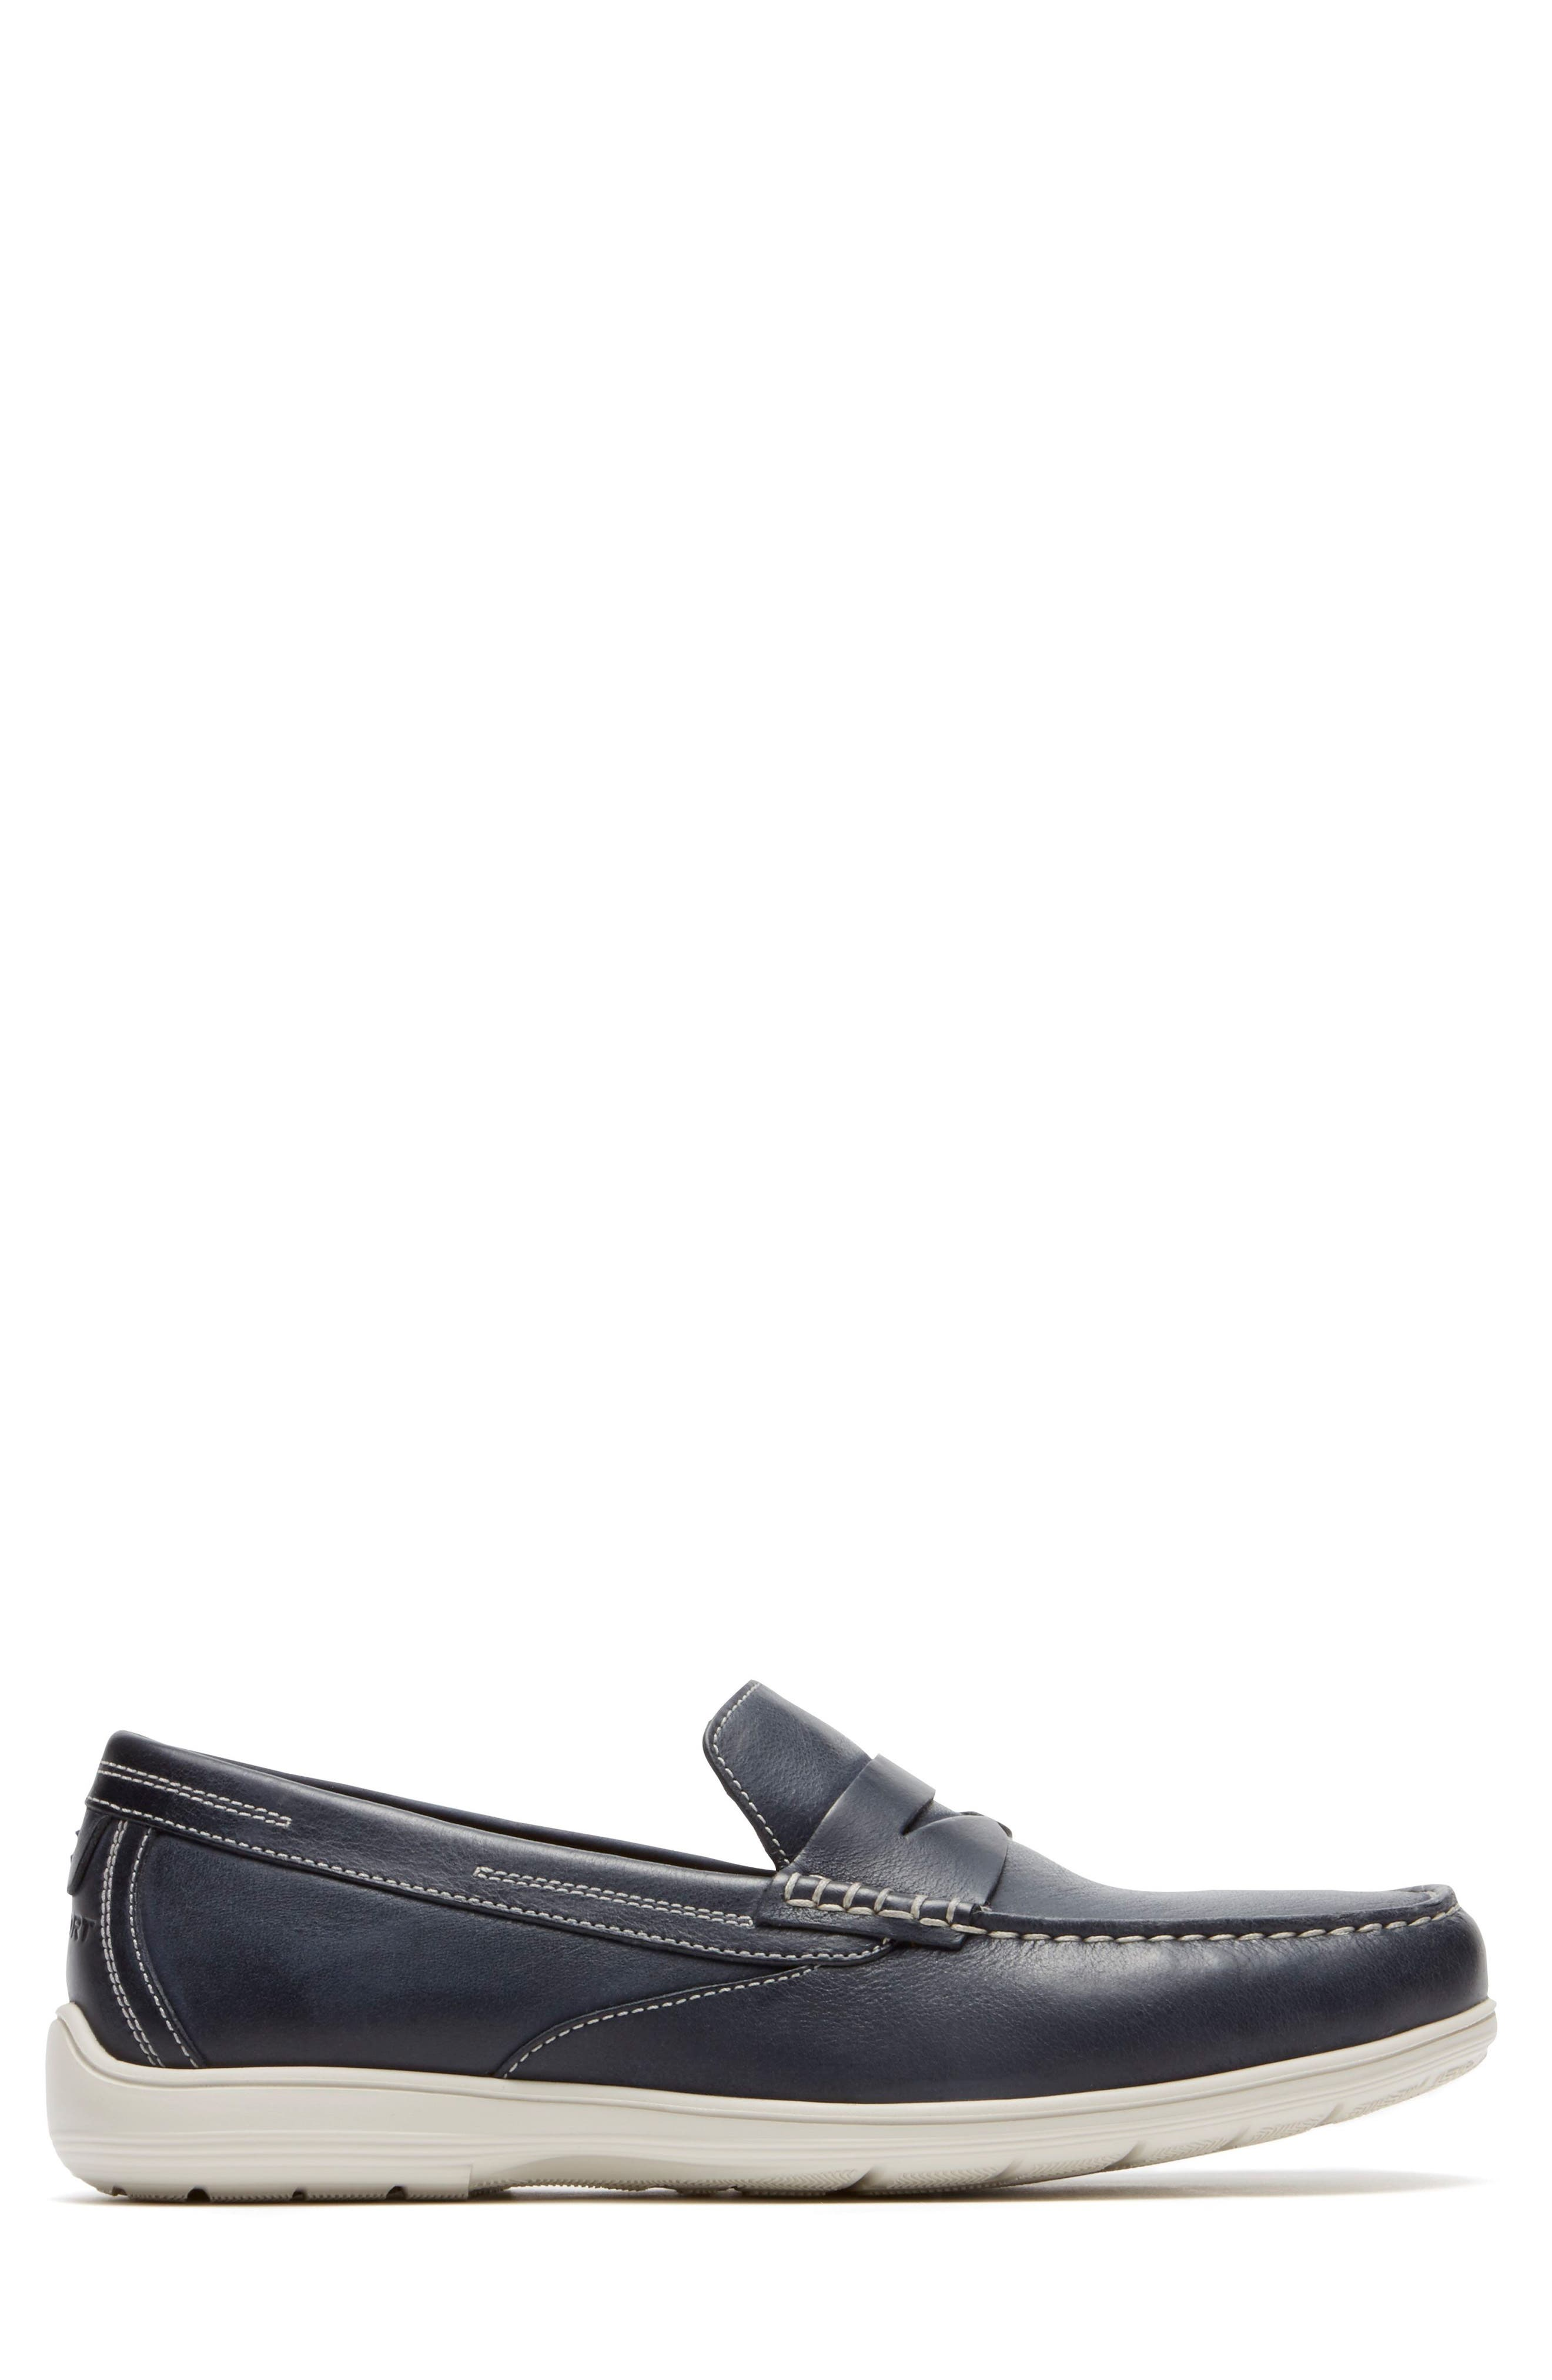 Total Motion Penny Loafer,                             Alternate thumbnail 12, color,